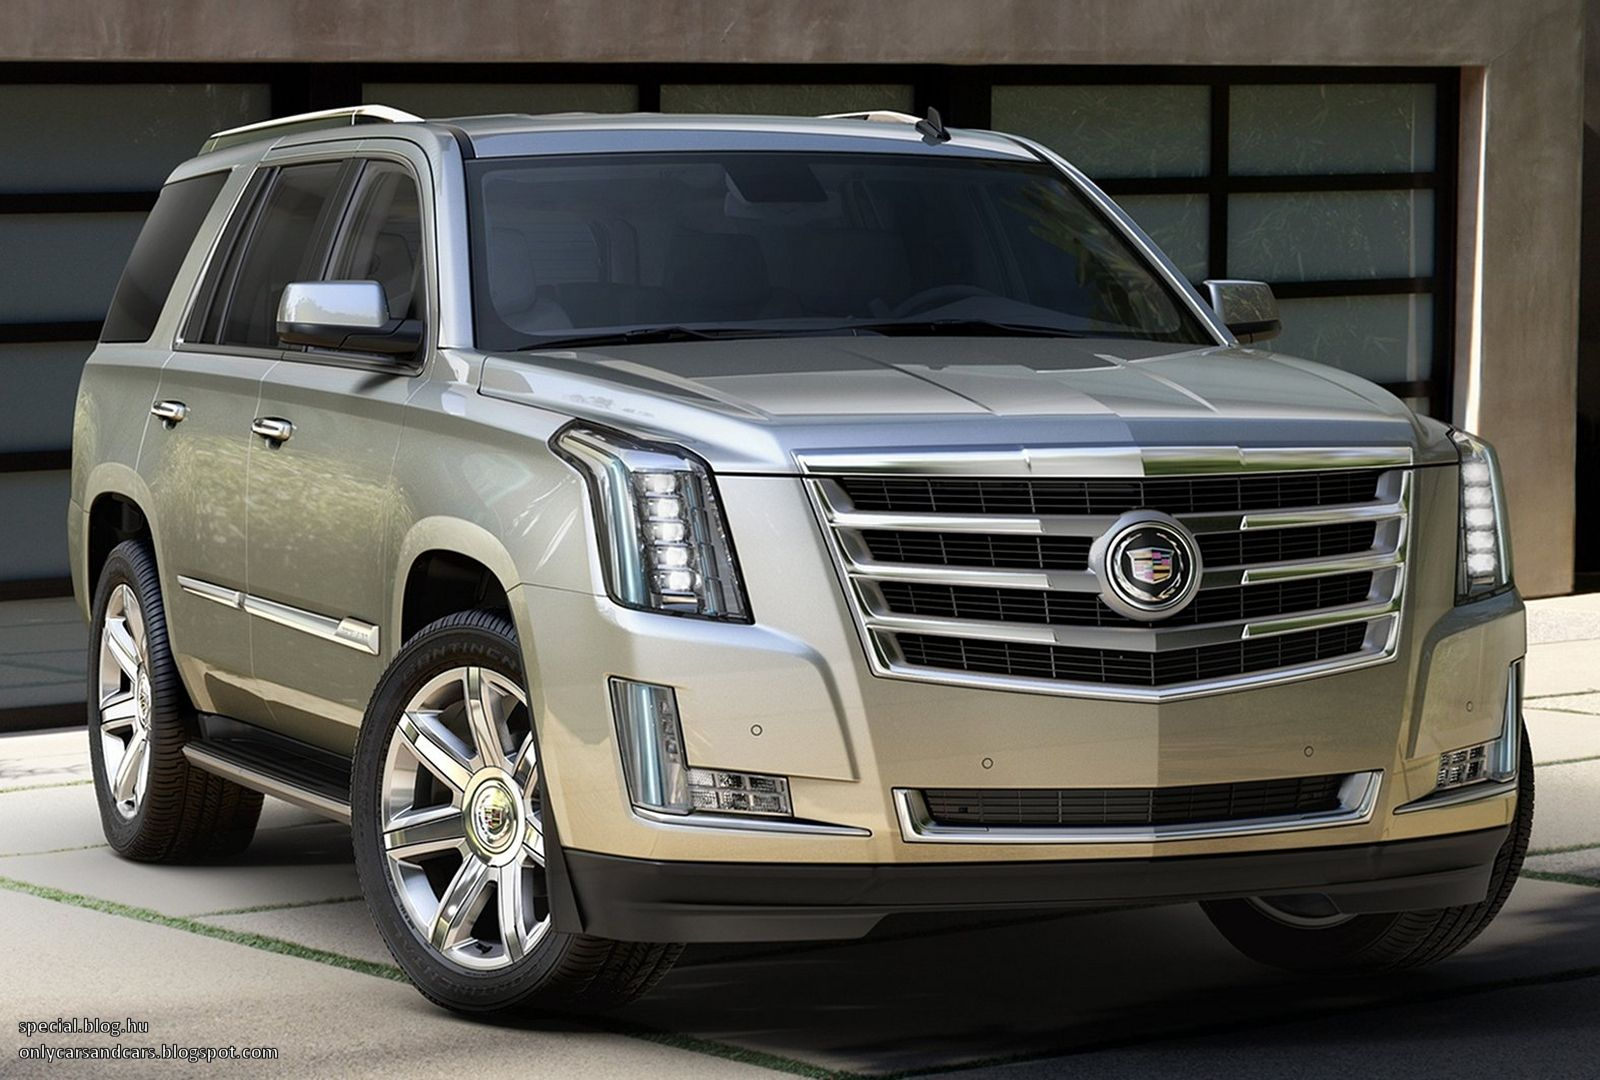 You can bookmark this page url http useddaewoocars blogspot com 2013 12 cadillac escalade 2014 html thanks